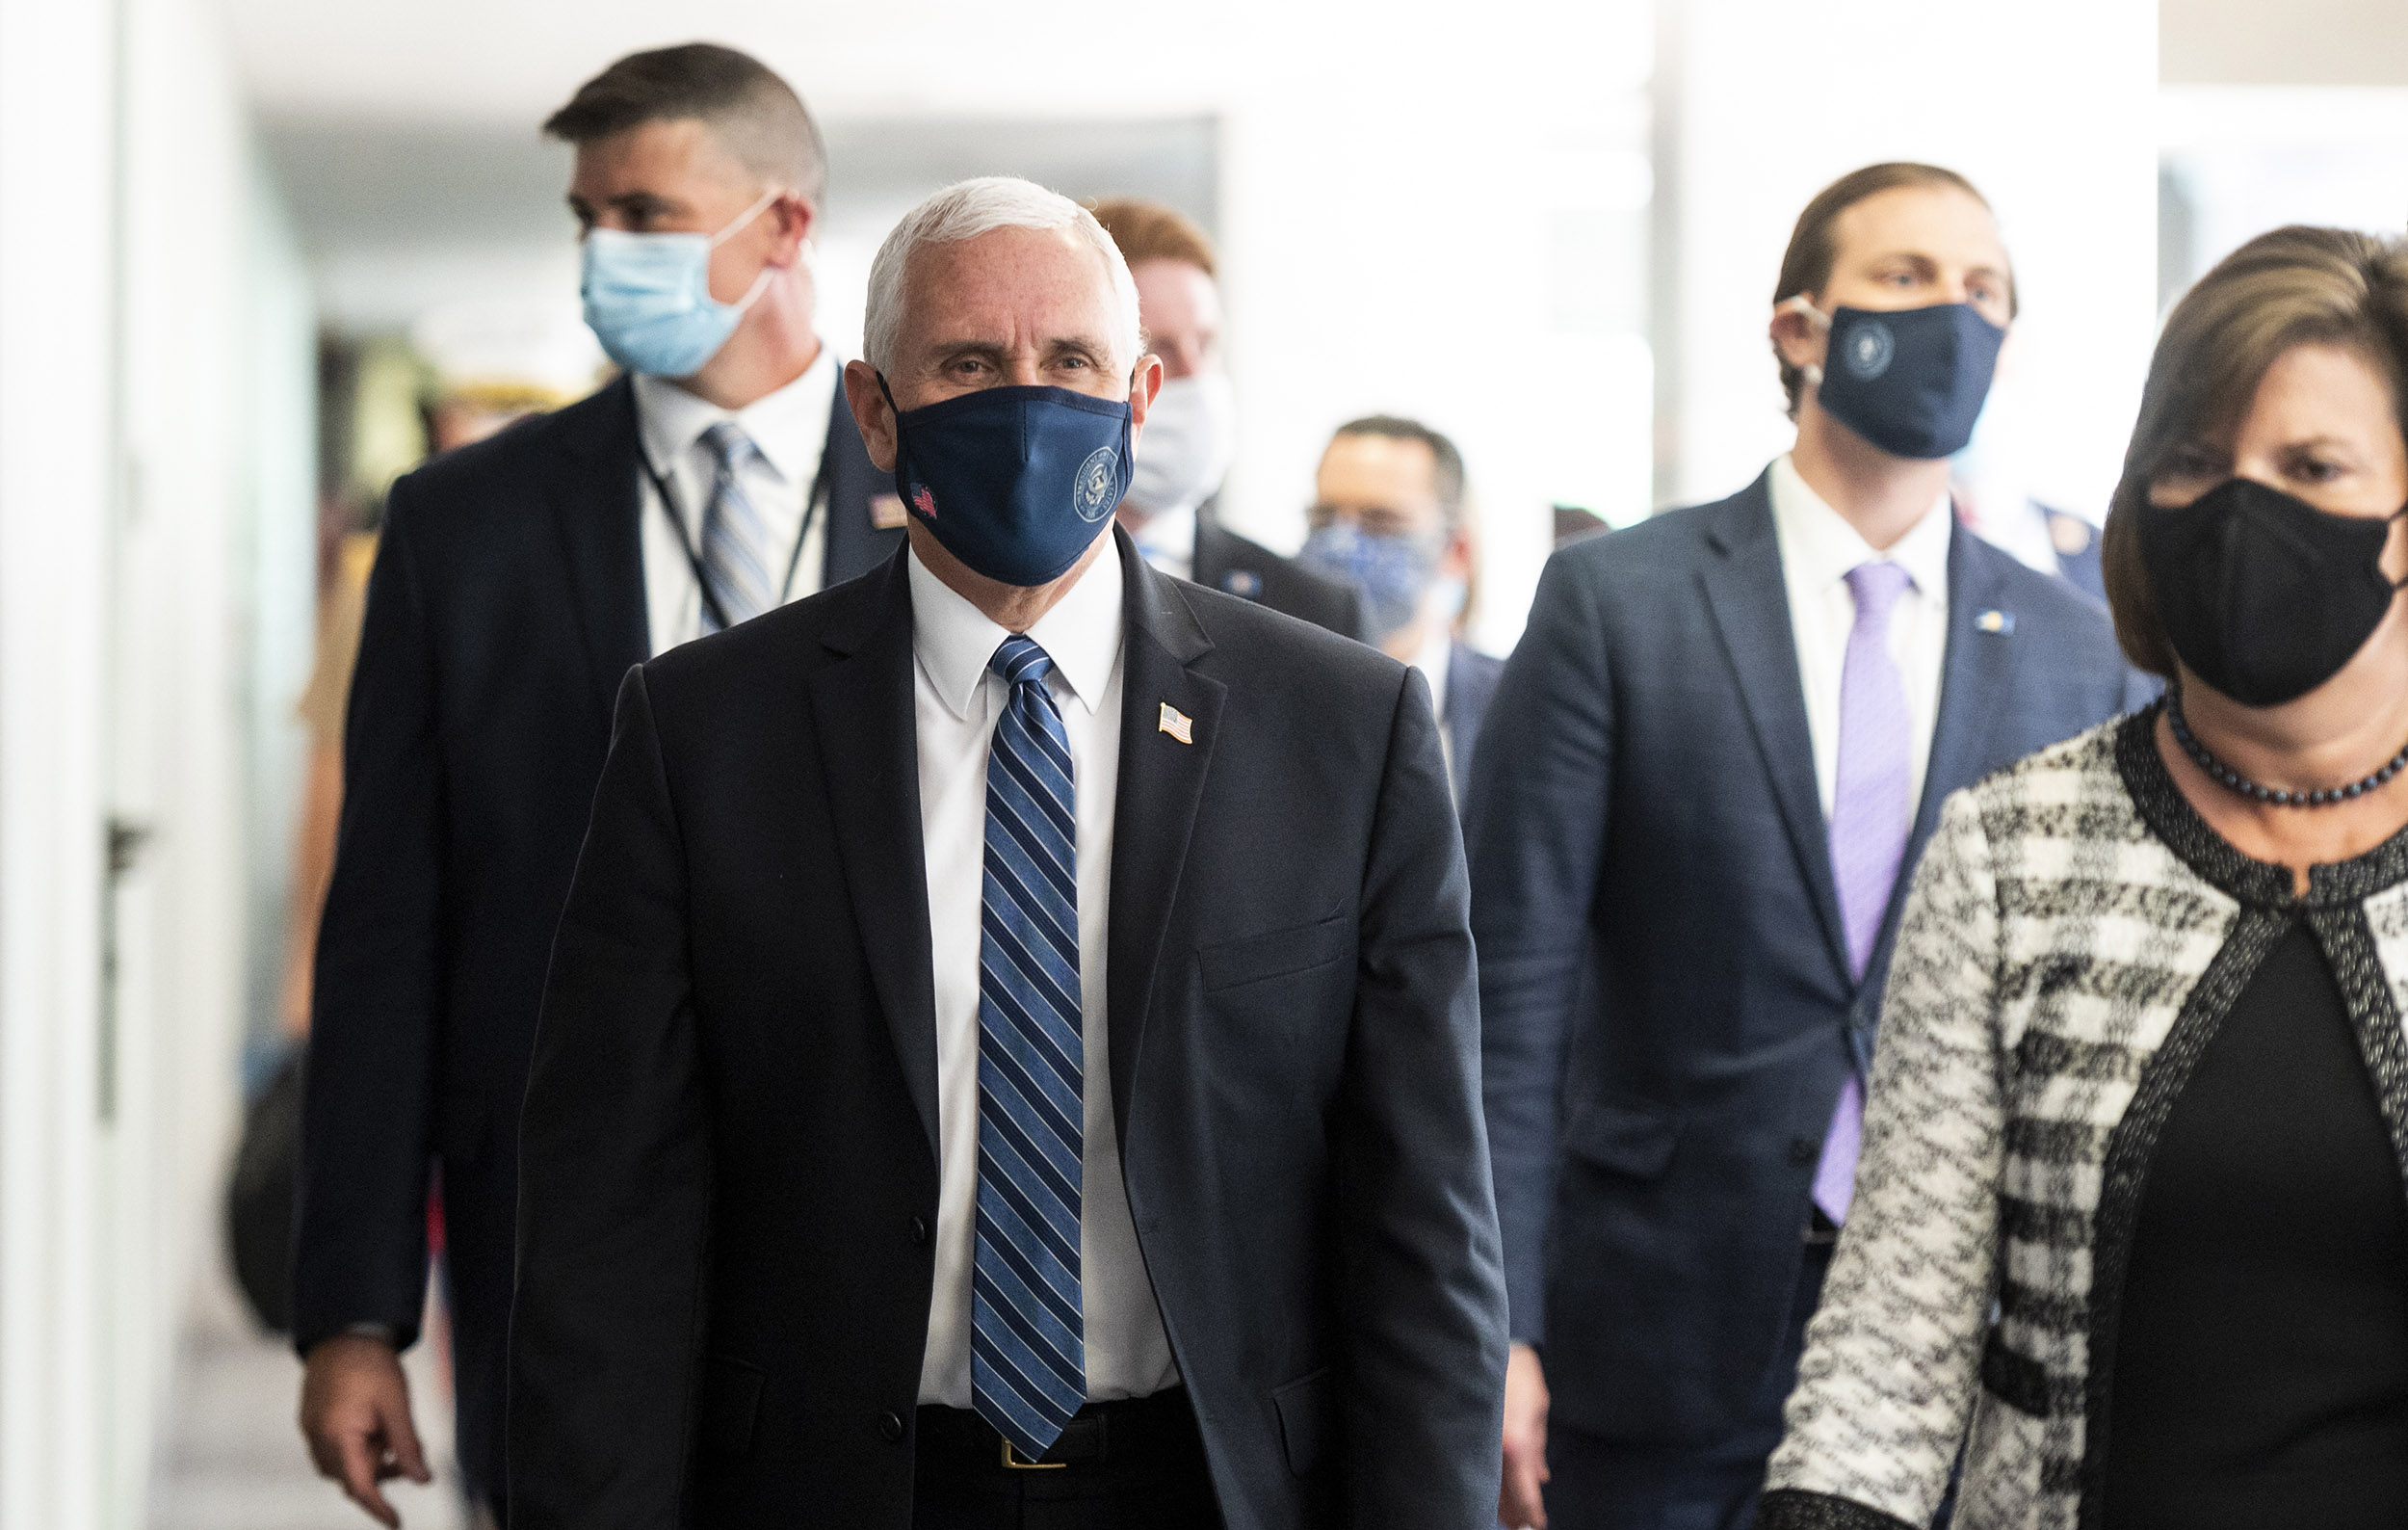 US Vice President Mike Pence arrives for the Senate Republicans' lunch in the Hart Senate Office Building in Washington DC, on Wednesday, June 24.